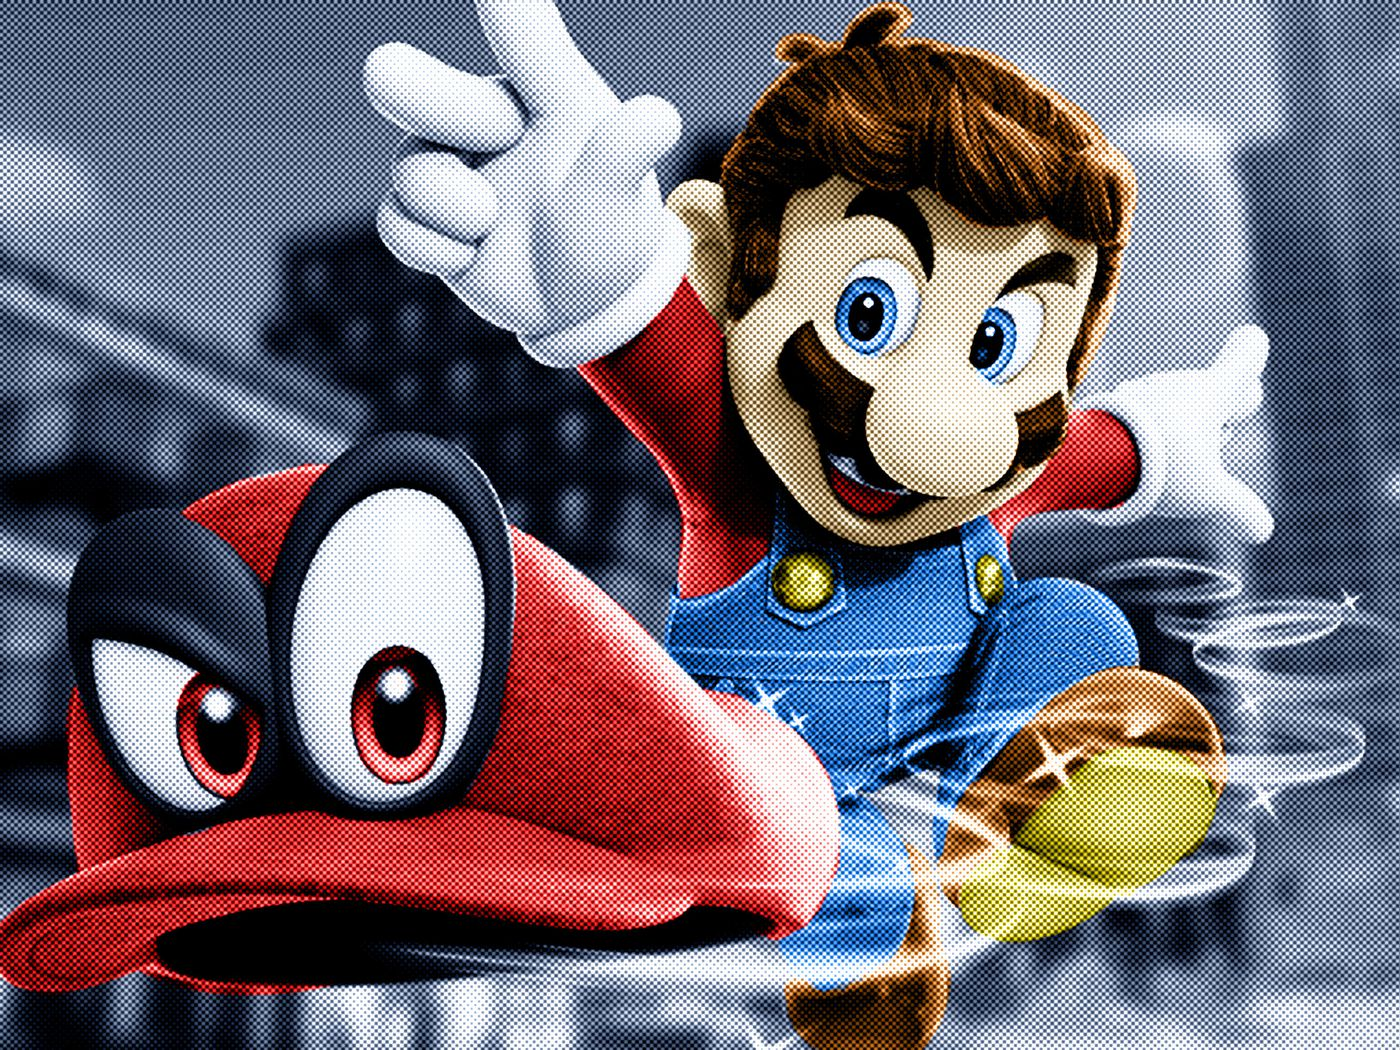 Why Super Mario Odyssey Might Be The Best Mario Game Ever The